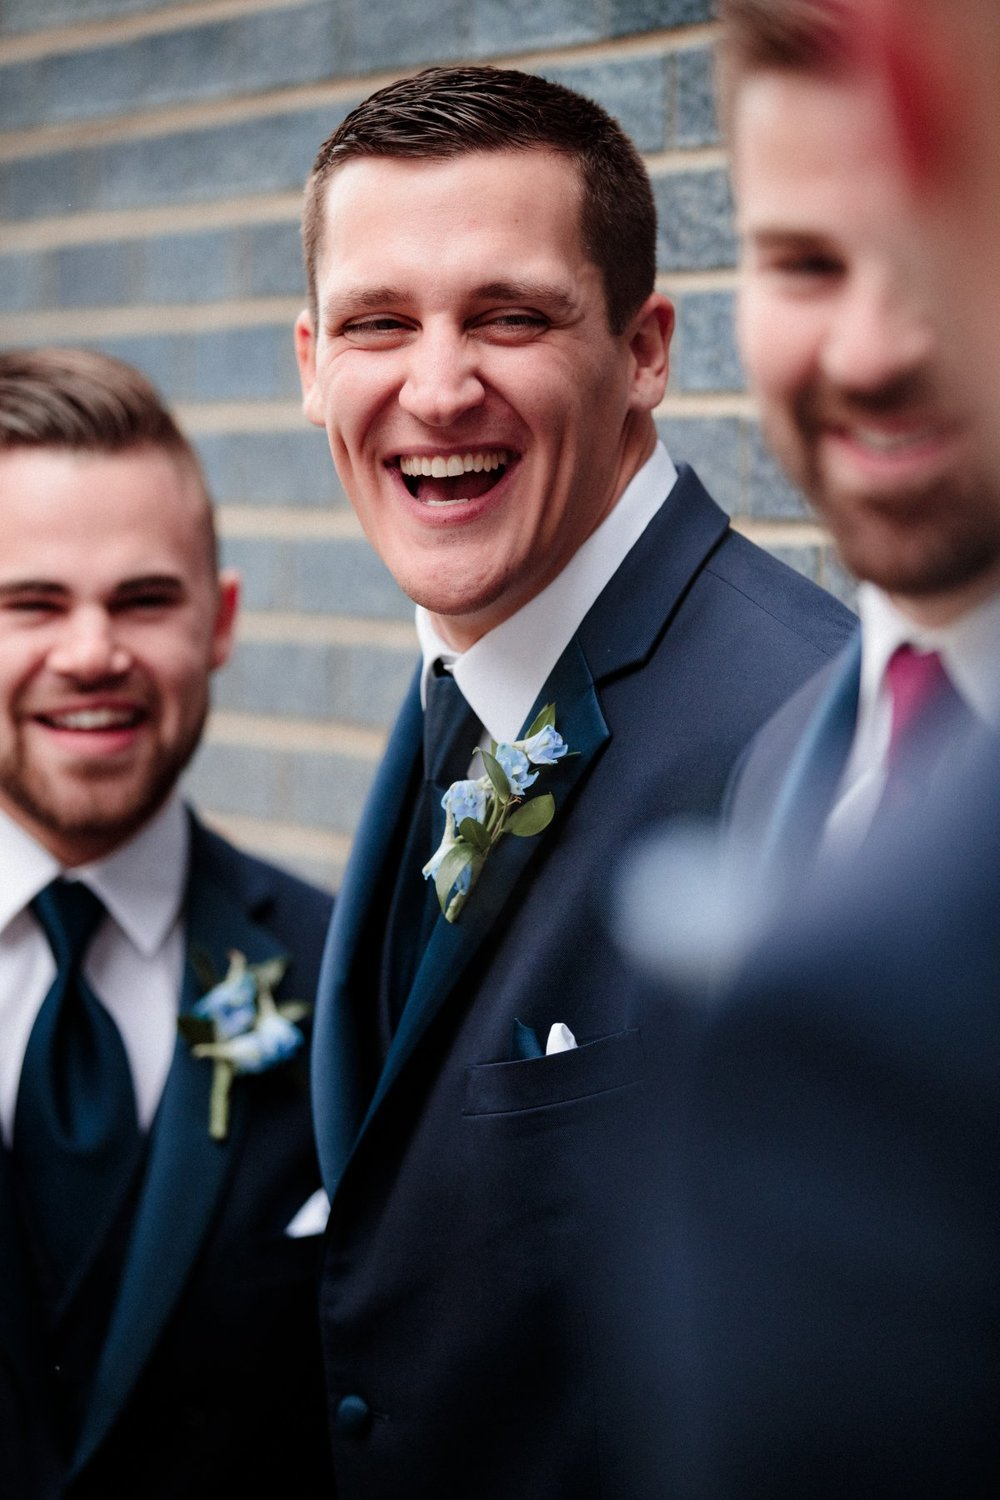 Groomsmen pictures ideas and posing